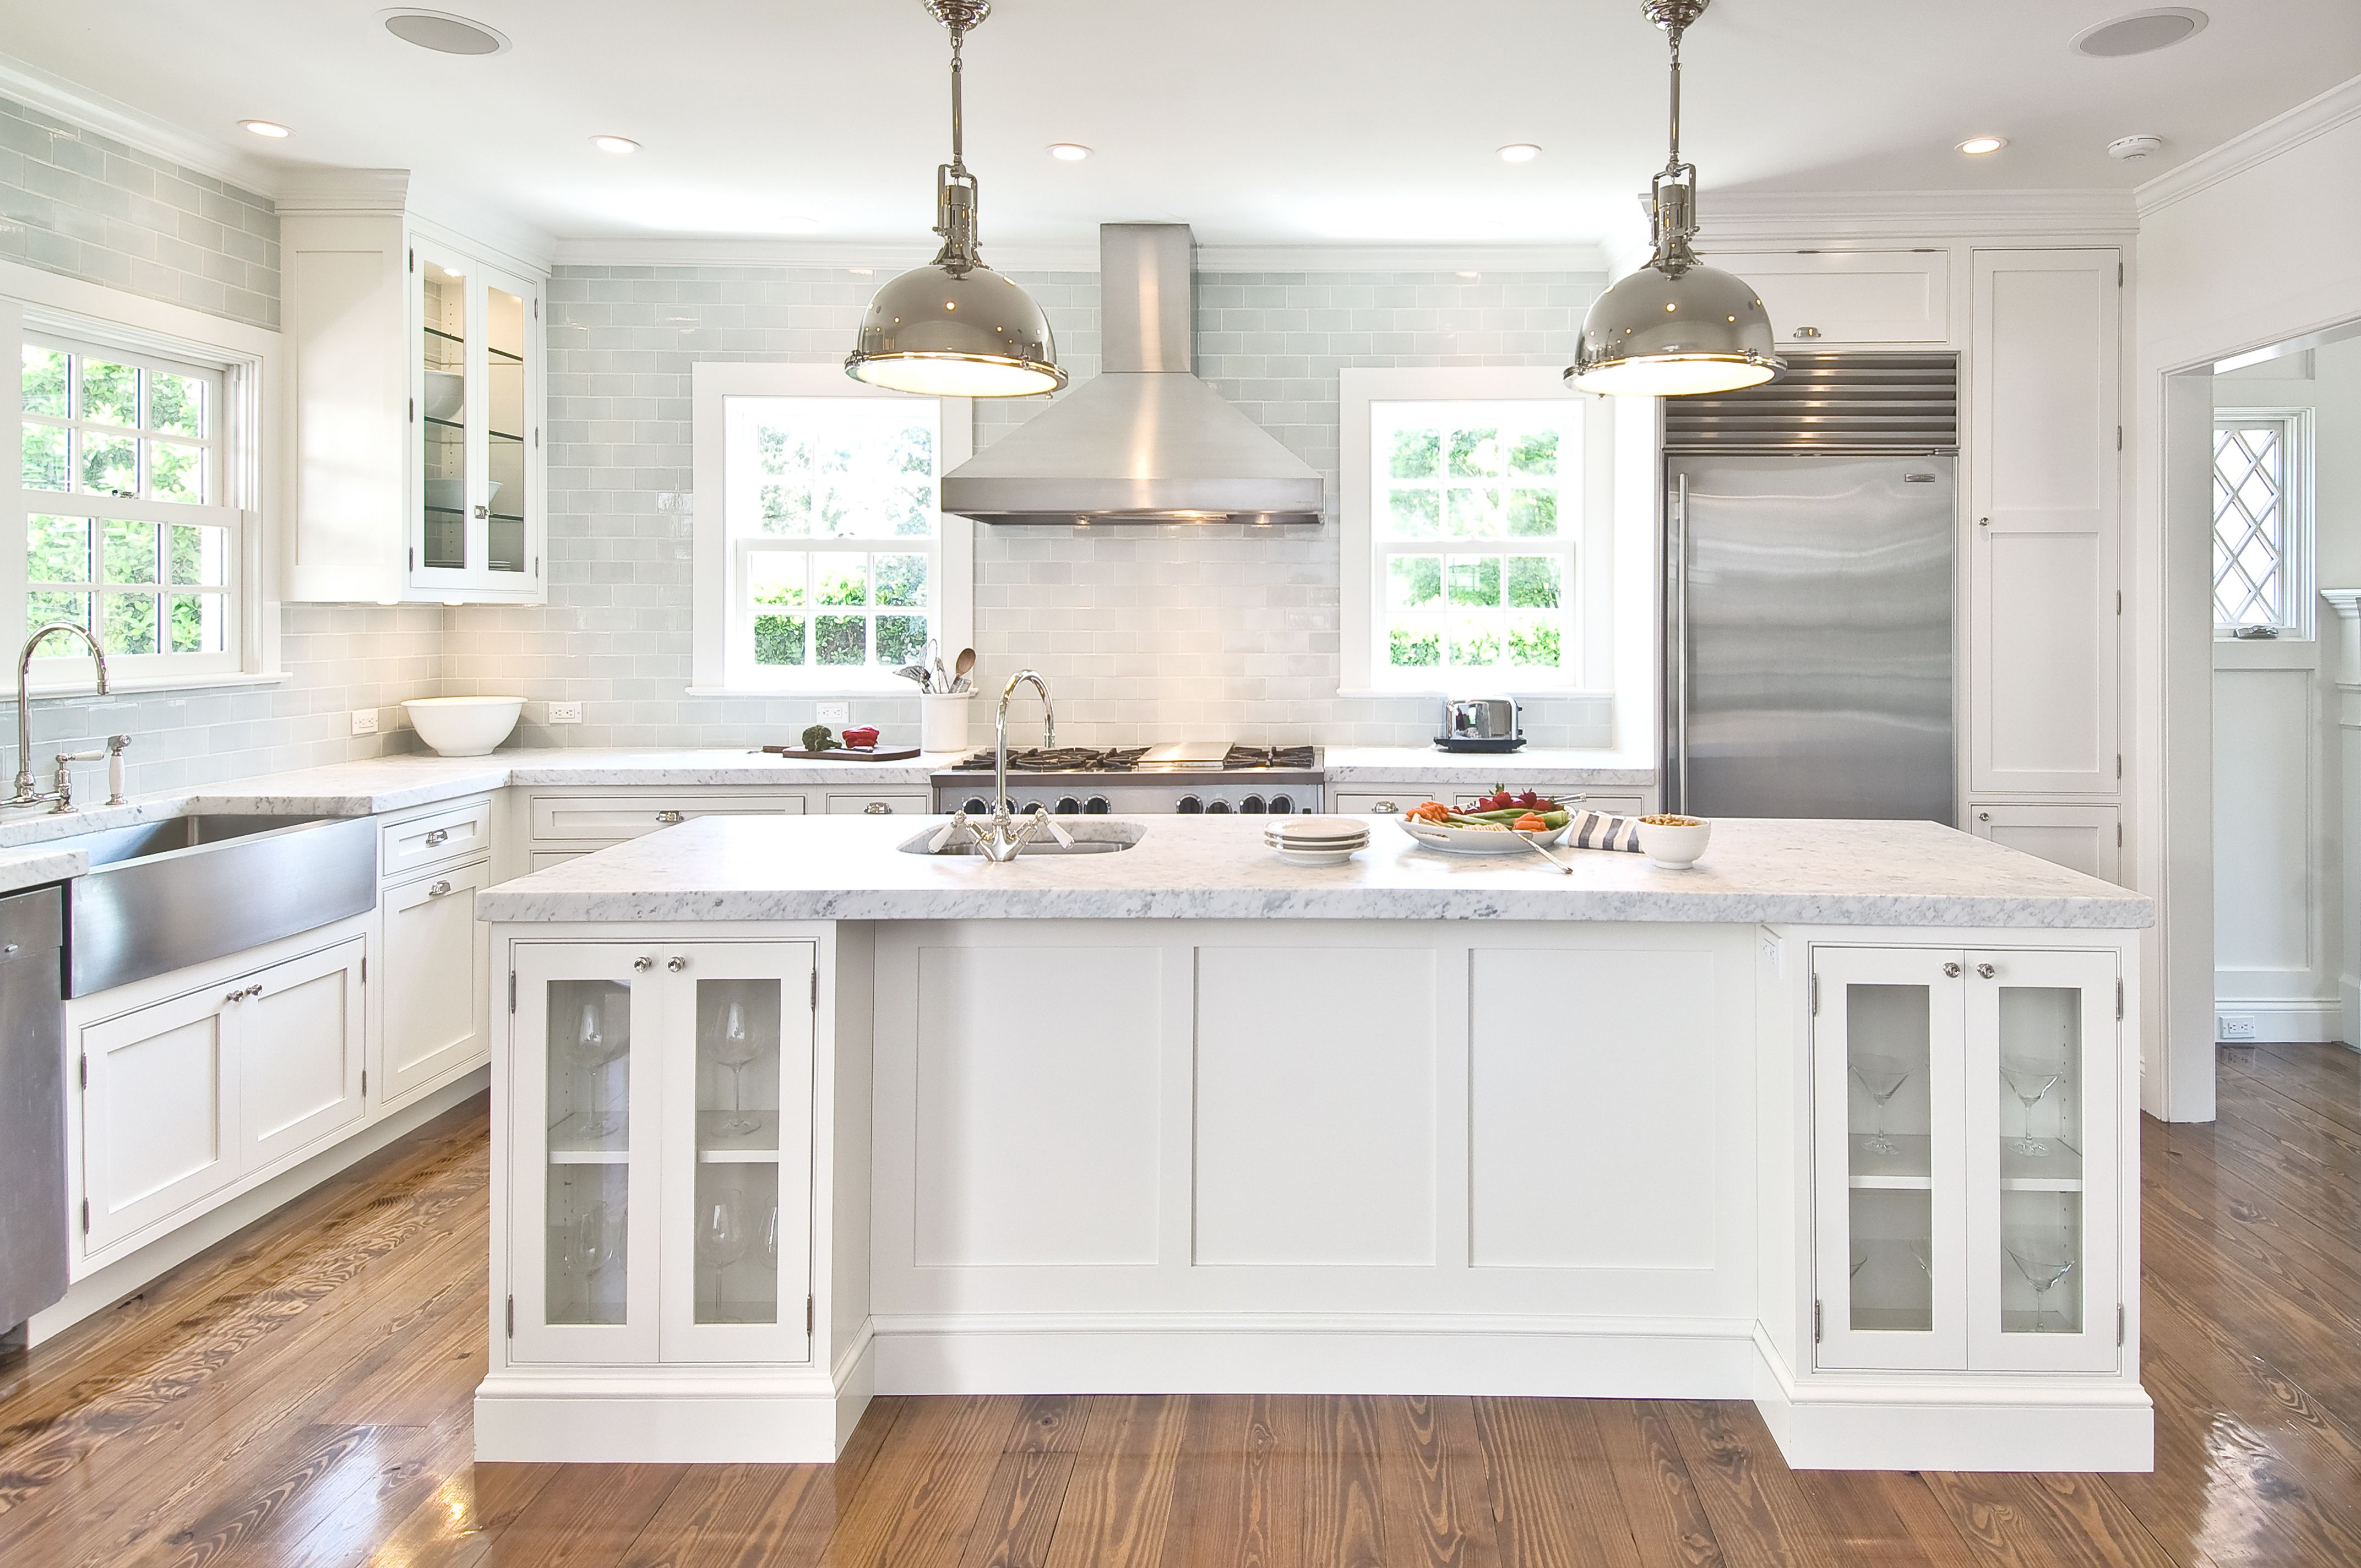 Kitchens  shaped blue subway tiles backsplash stainless steel apron sink white glass front kitchen cabinets marble countertops in island also this clean yet traditional is the quintessential hamptons